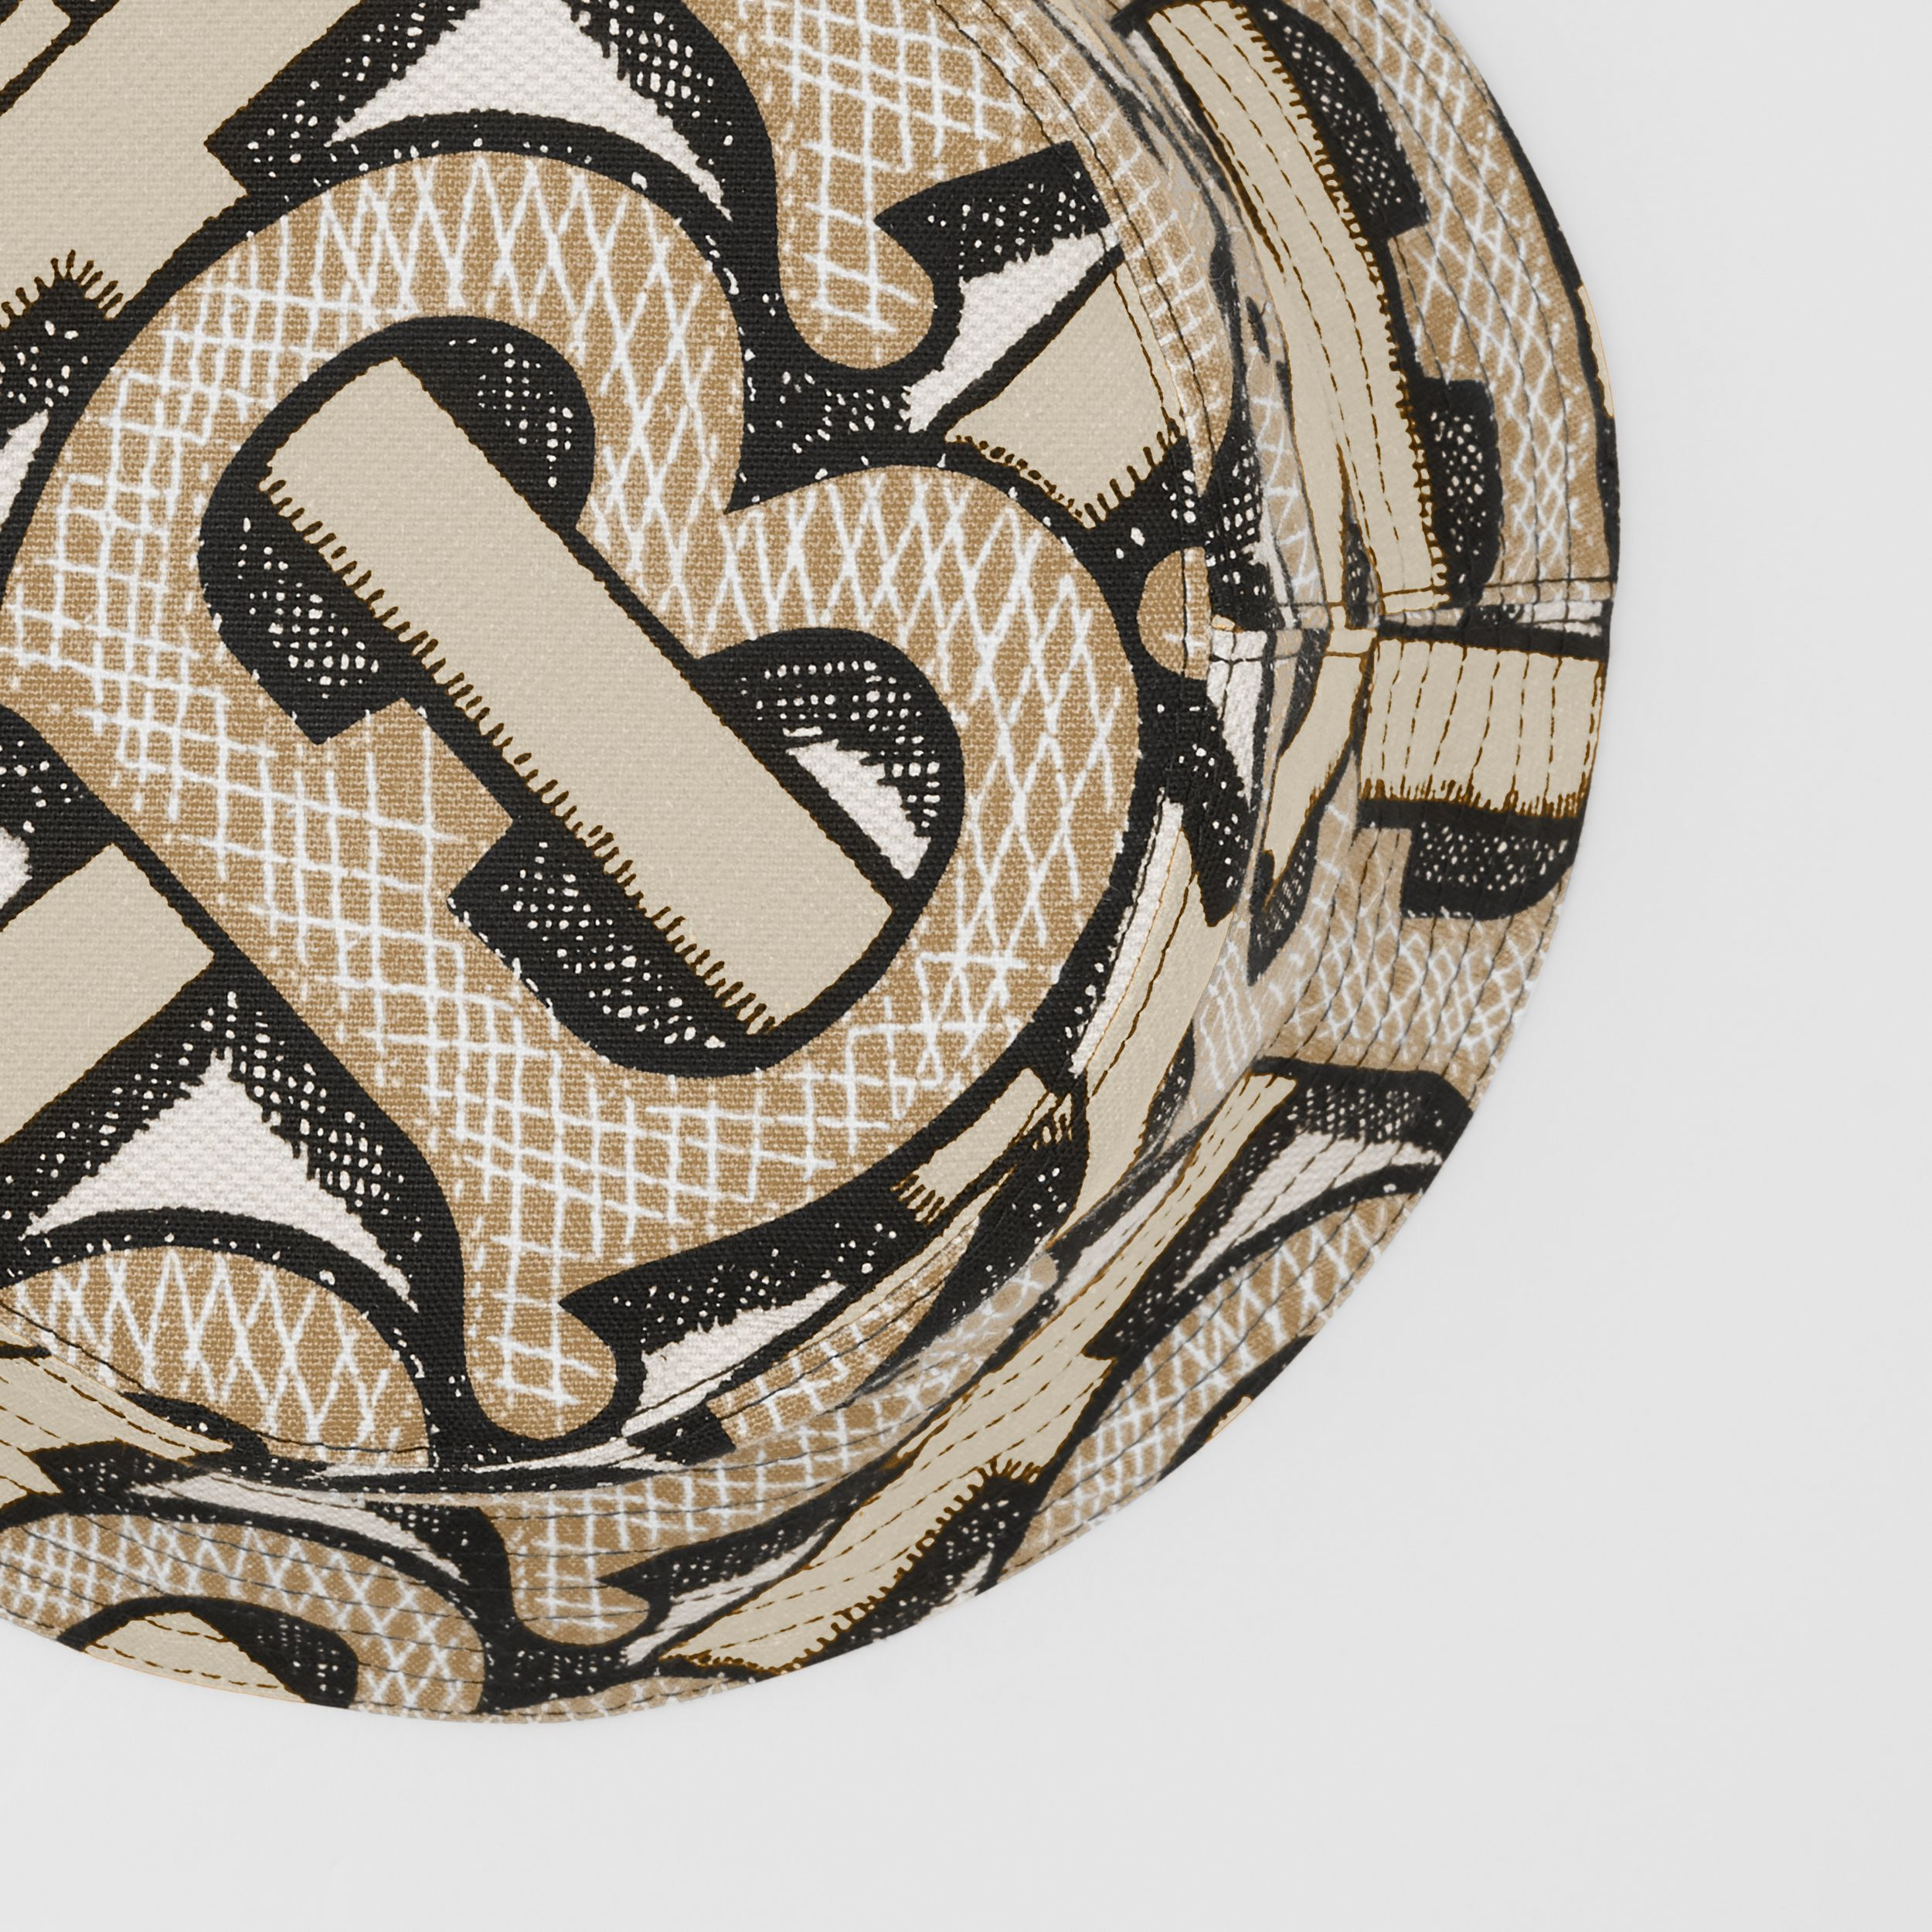 Monogram Print Cotton Canvas Bucket Hat in Dark Beige | Burberry - 2